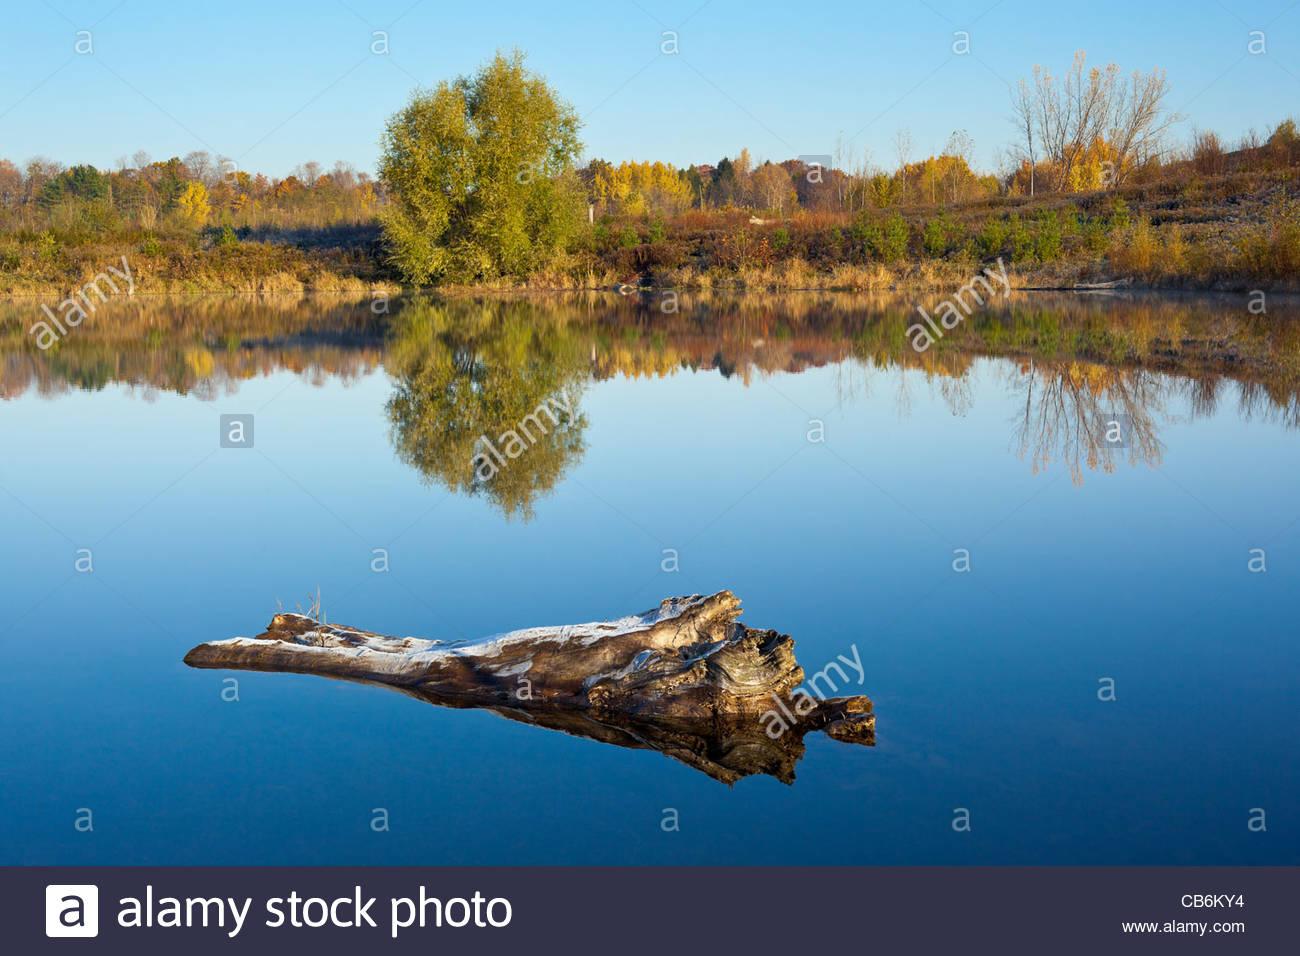 partially-submerged-log-in-the-autumn-in